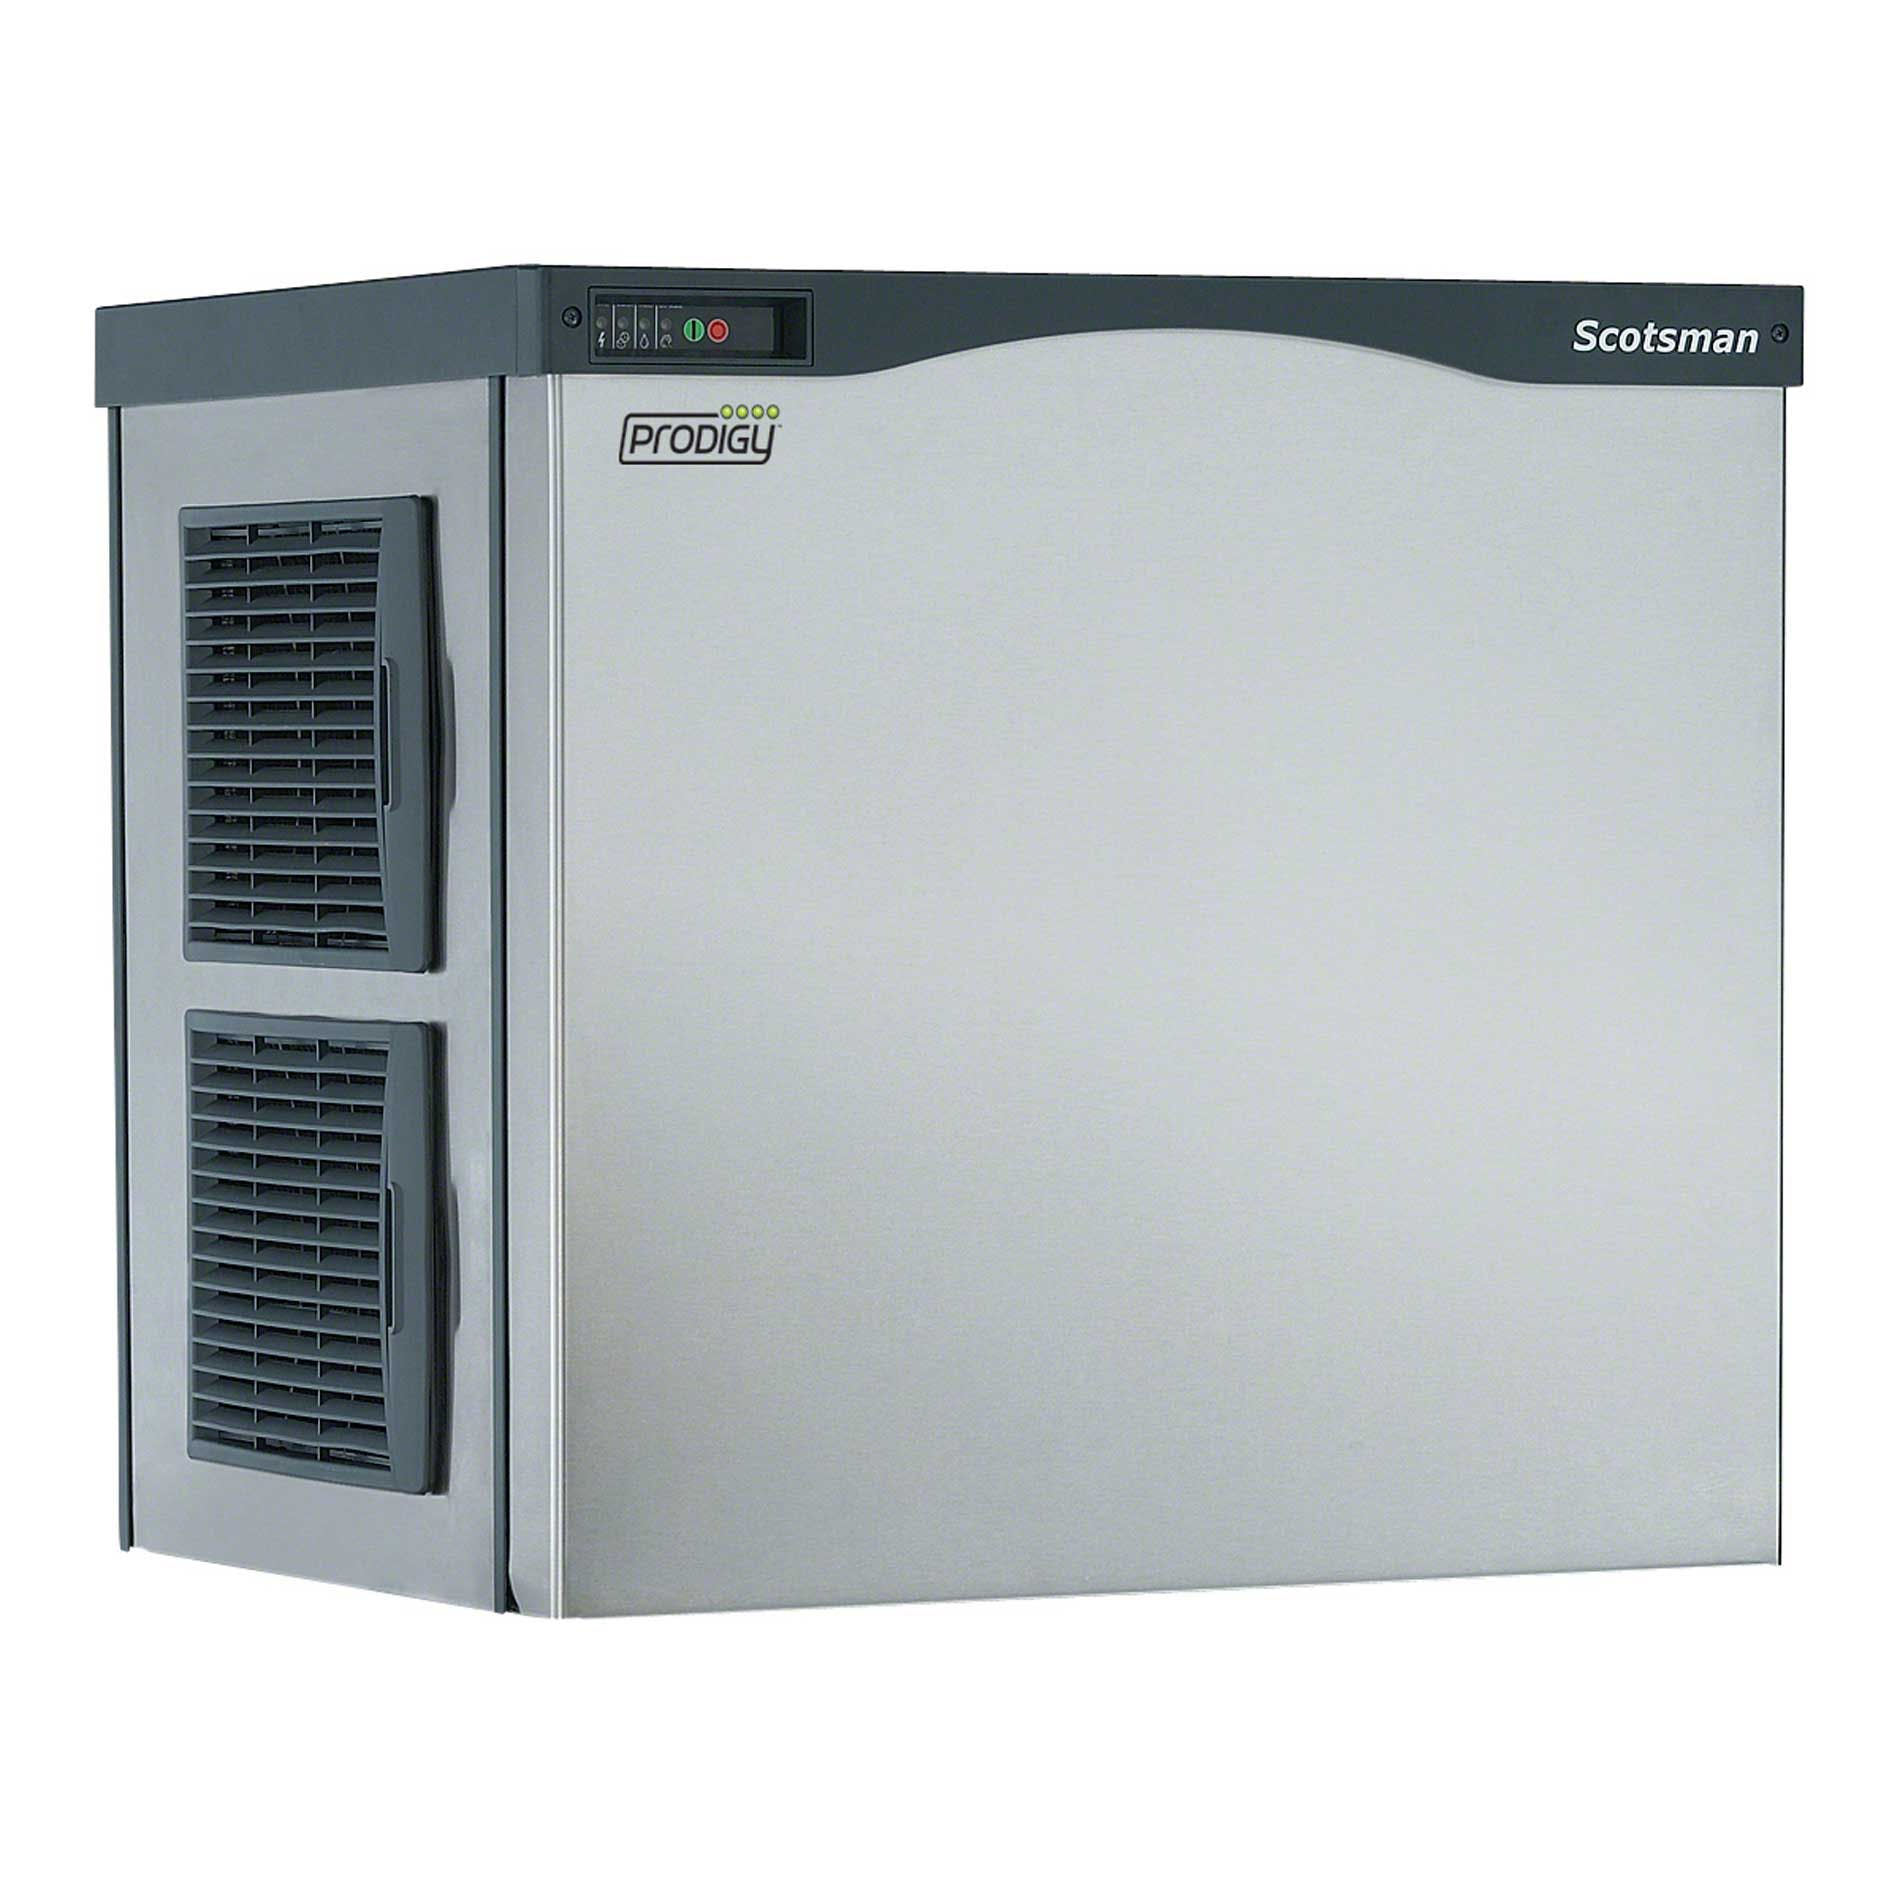 Scotsman - C1030SR-3 1000 lb Modular Cube Ice Machine - Prodigy® Series Ice machine sold by Food Service Warehouse